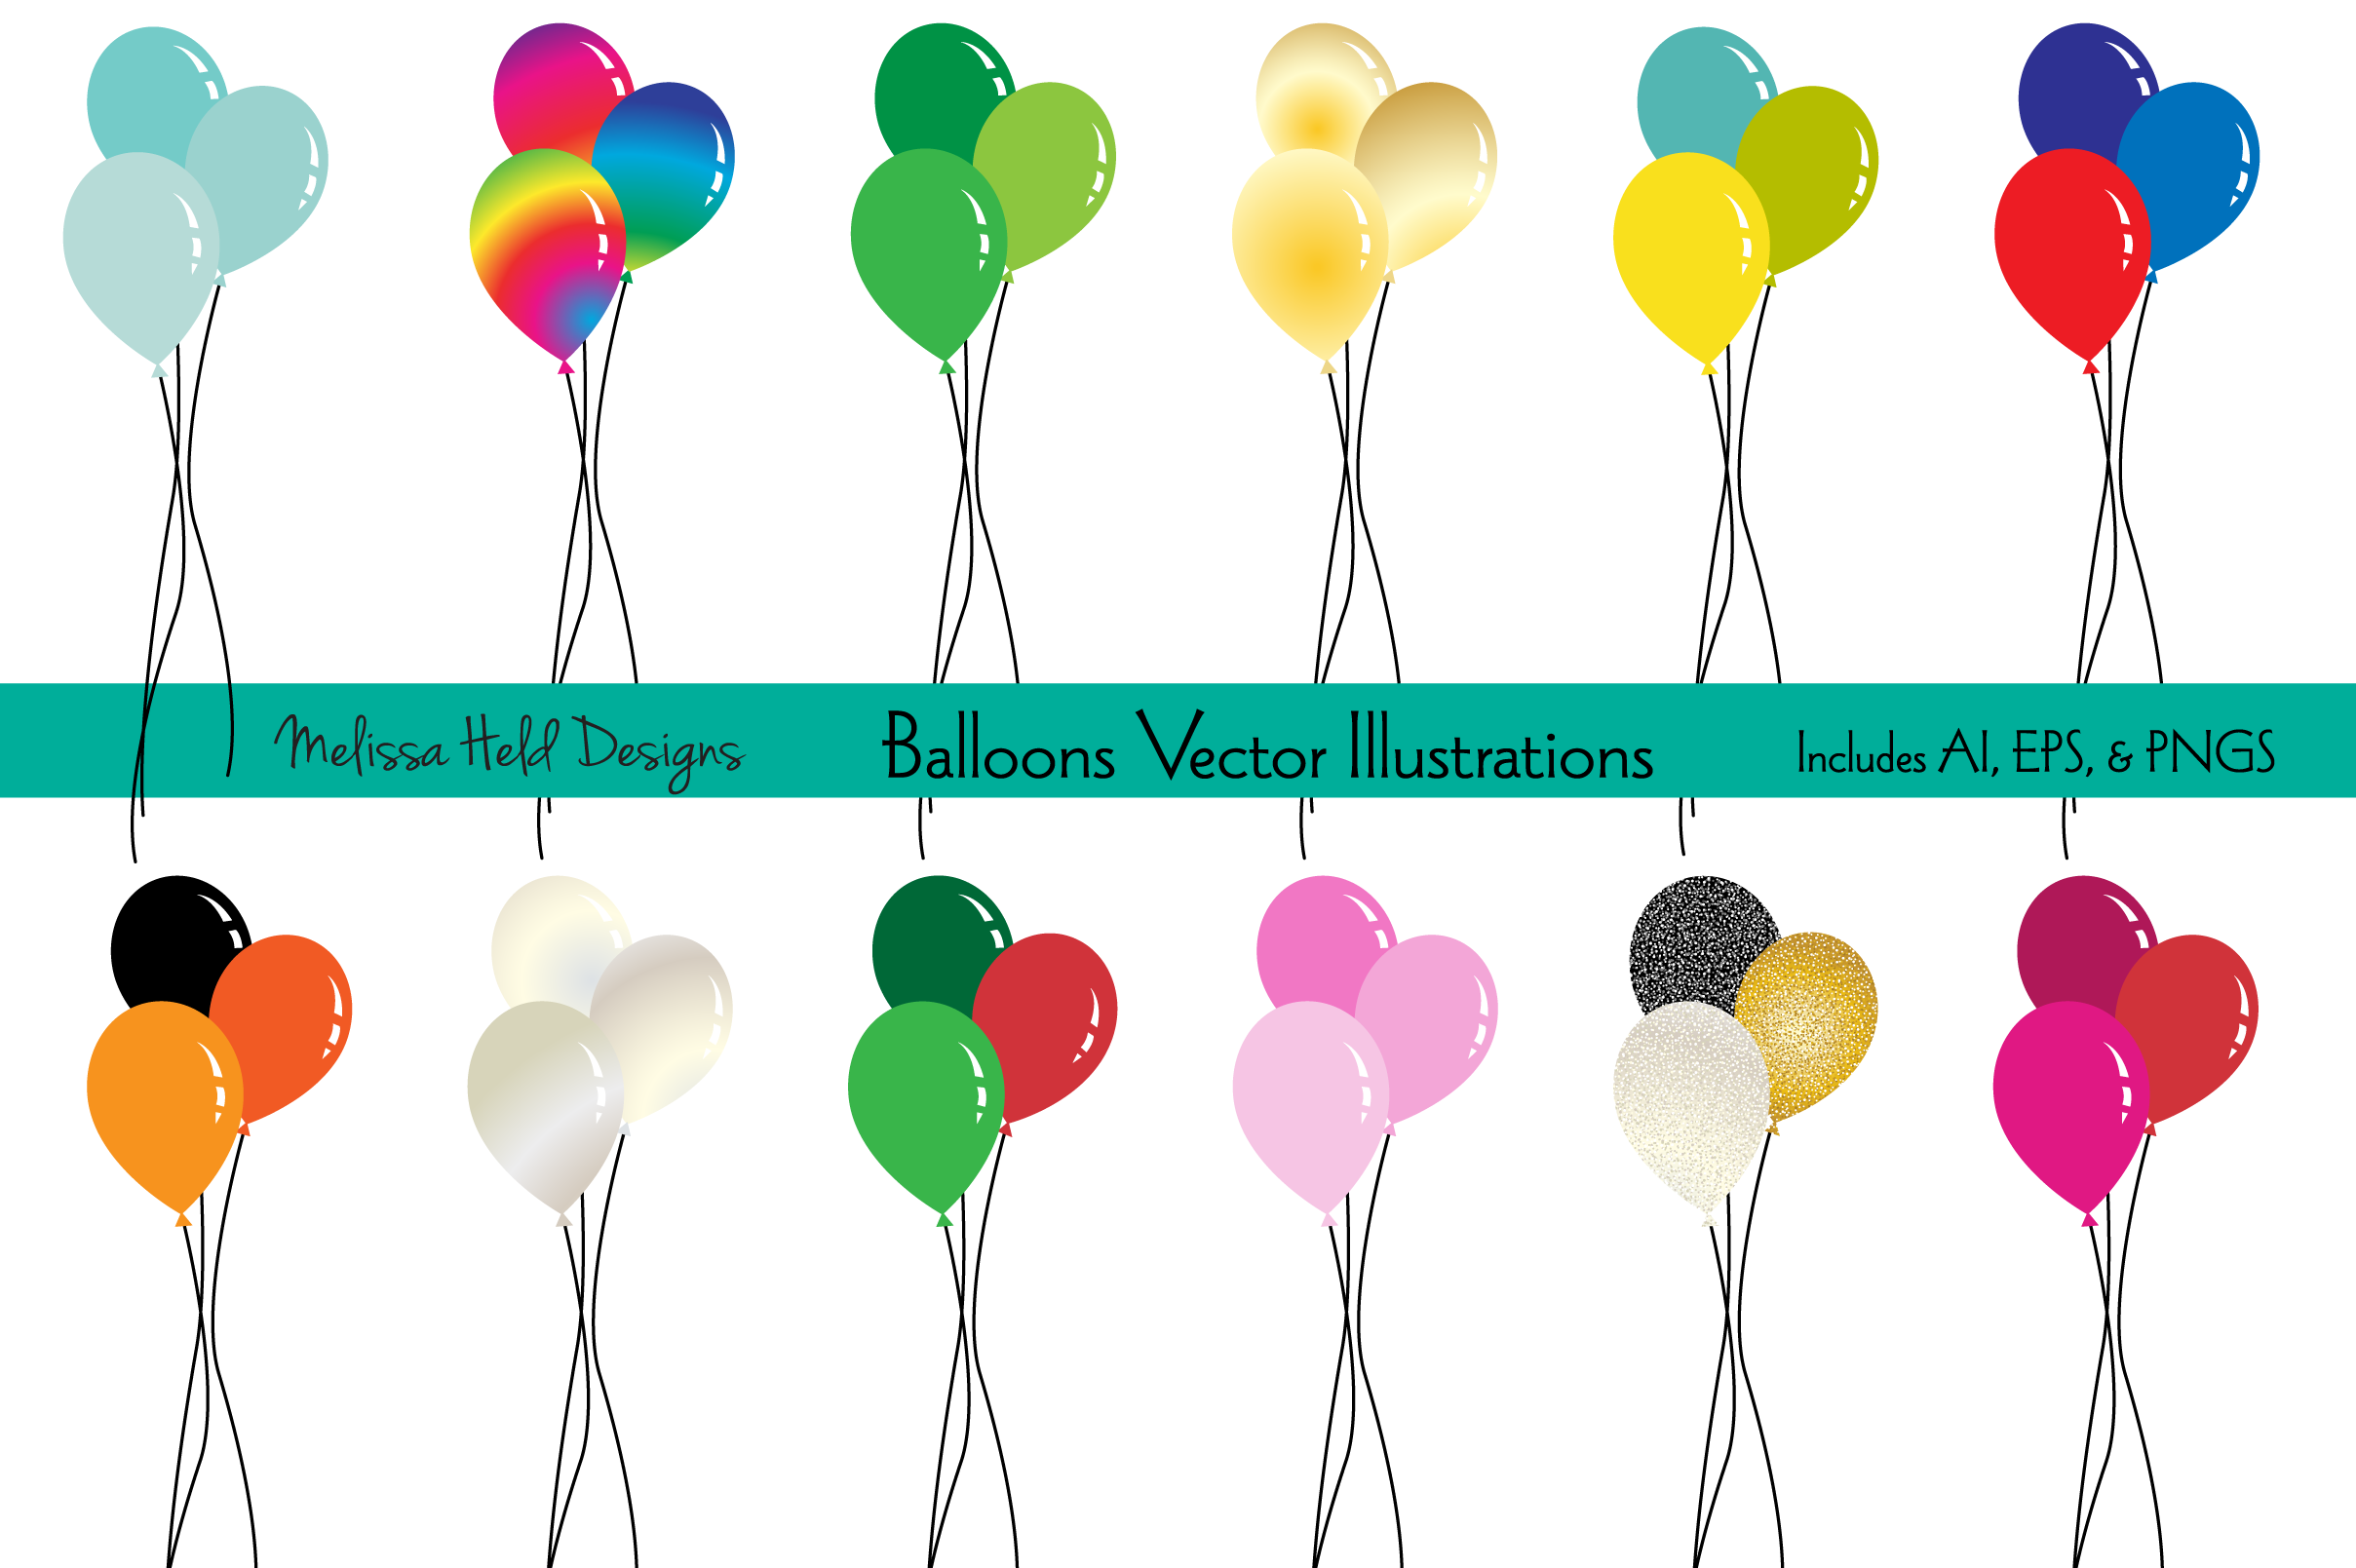 Download Free Holiday Balloons Vector Illustrations Grafico Por Melissa Held Designs Creative Fabrica for Cricut Explore, Silhouette and other cutting machines.